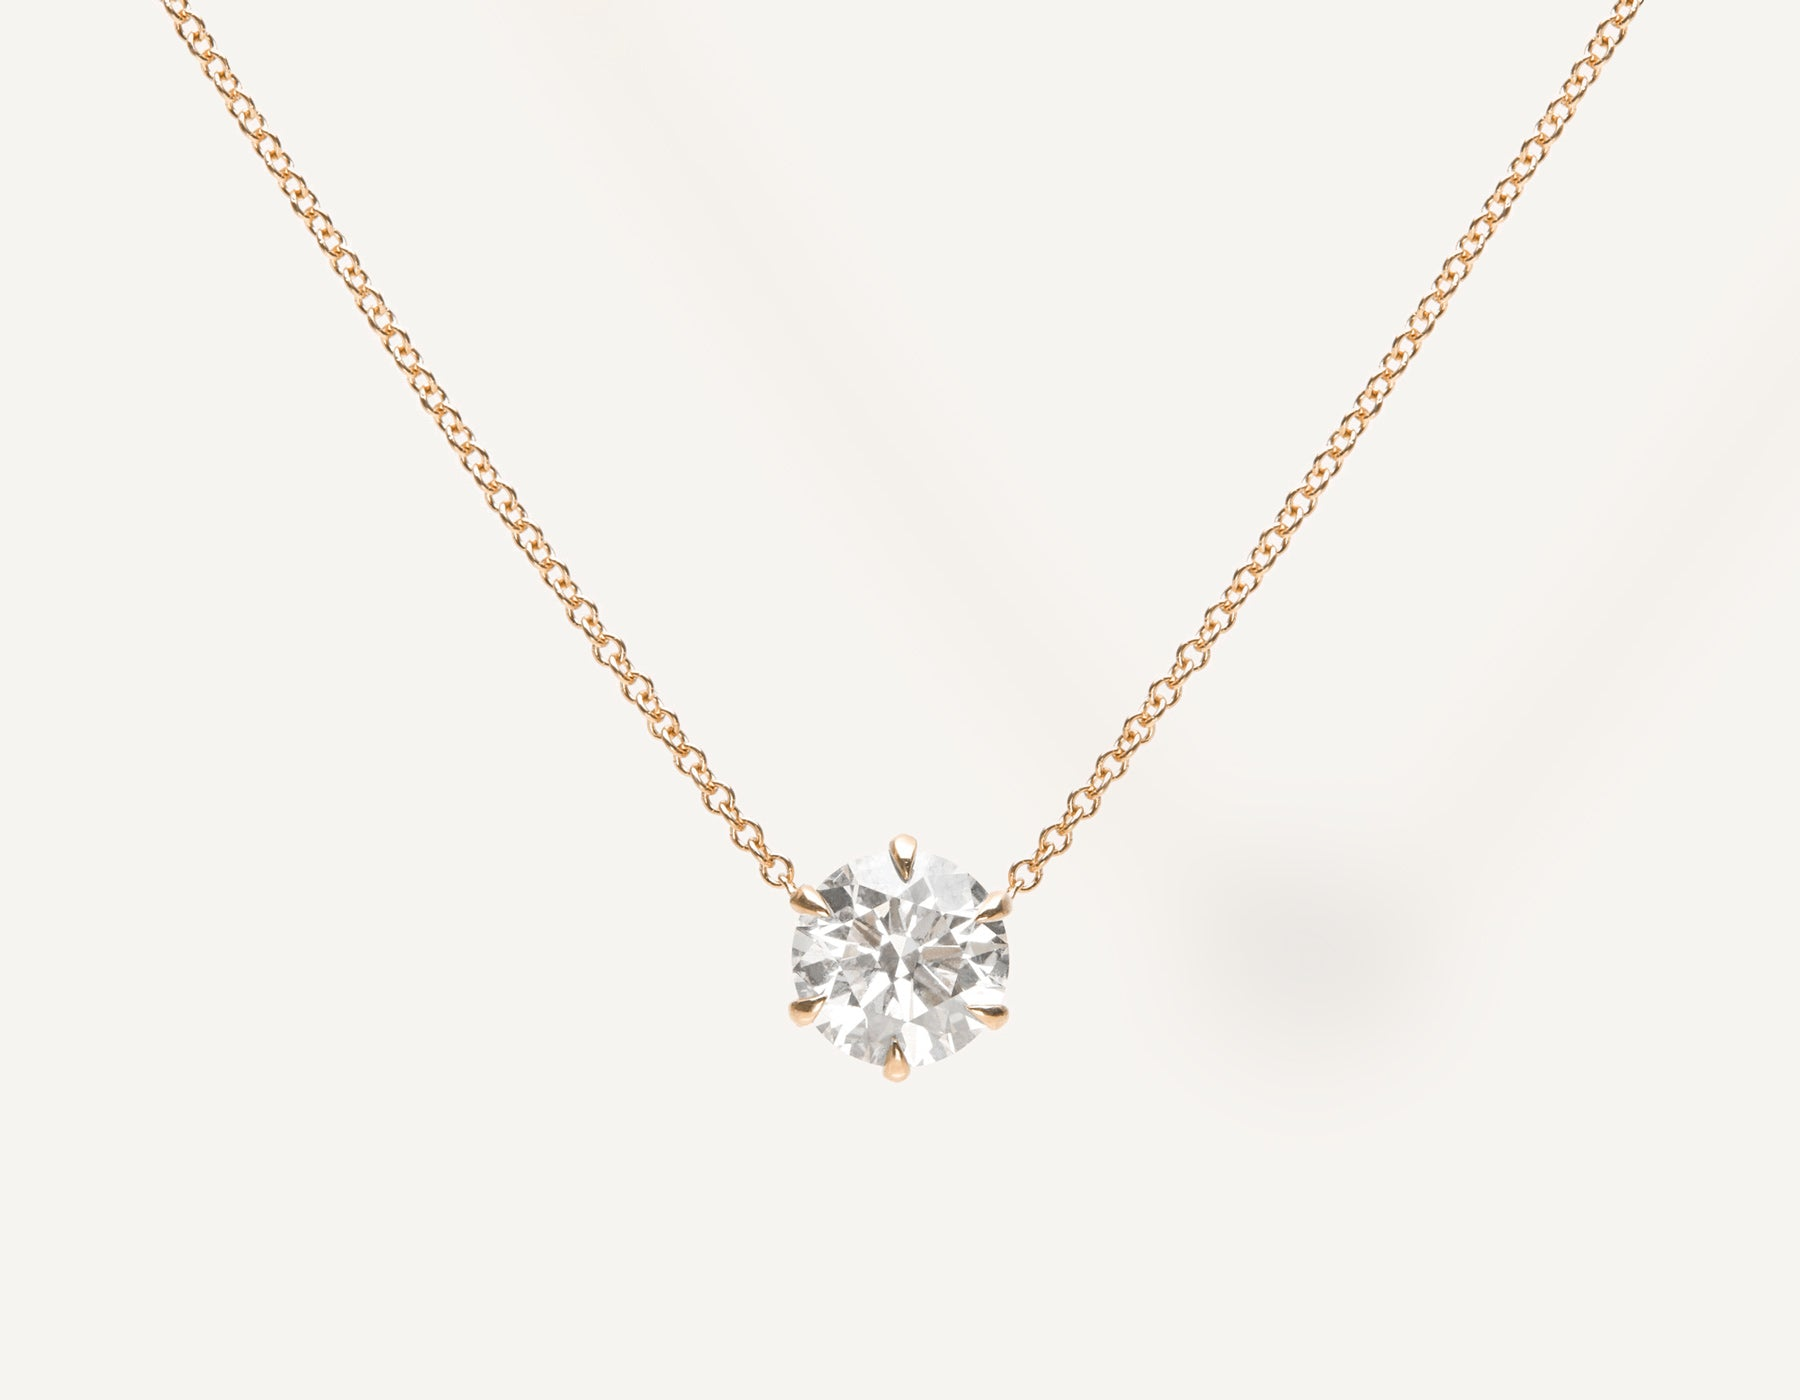 Simple Classic 1.0 ct Round Brilliant Diamond Necklace 18k solid gold oval link chain Vrai & Oro sustainable jewelry, 18K Rose Gold